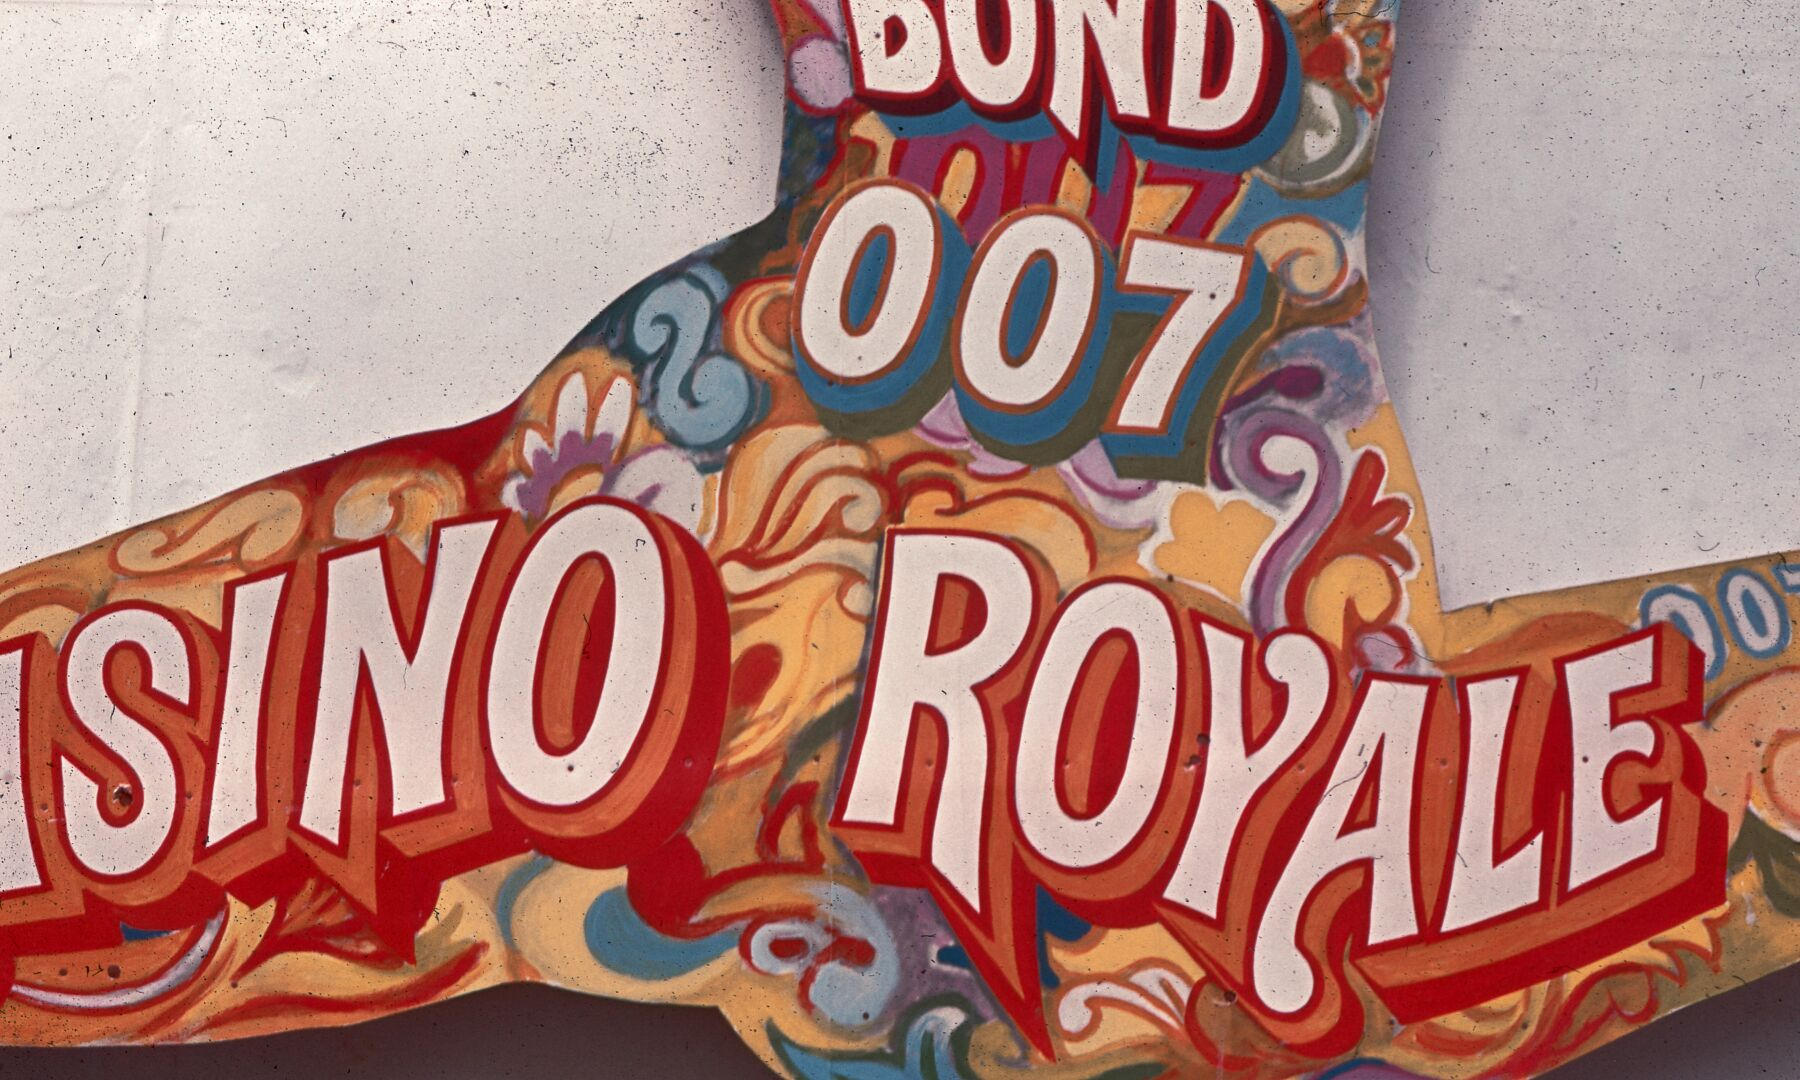 Casino Royale Sign In London by Bob Hyde - 1960s